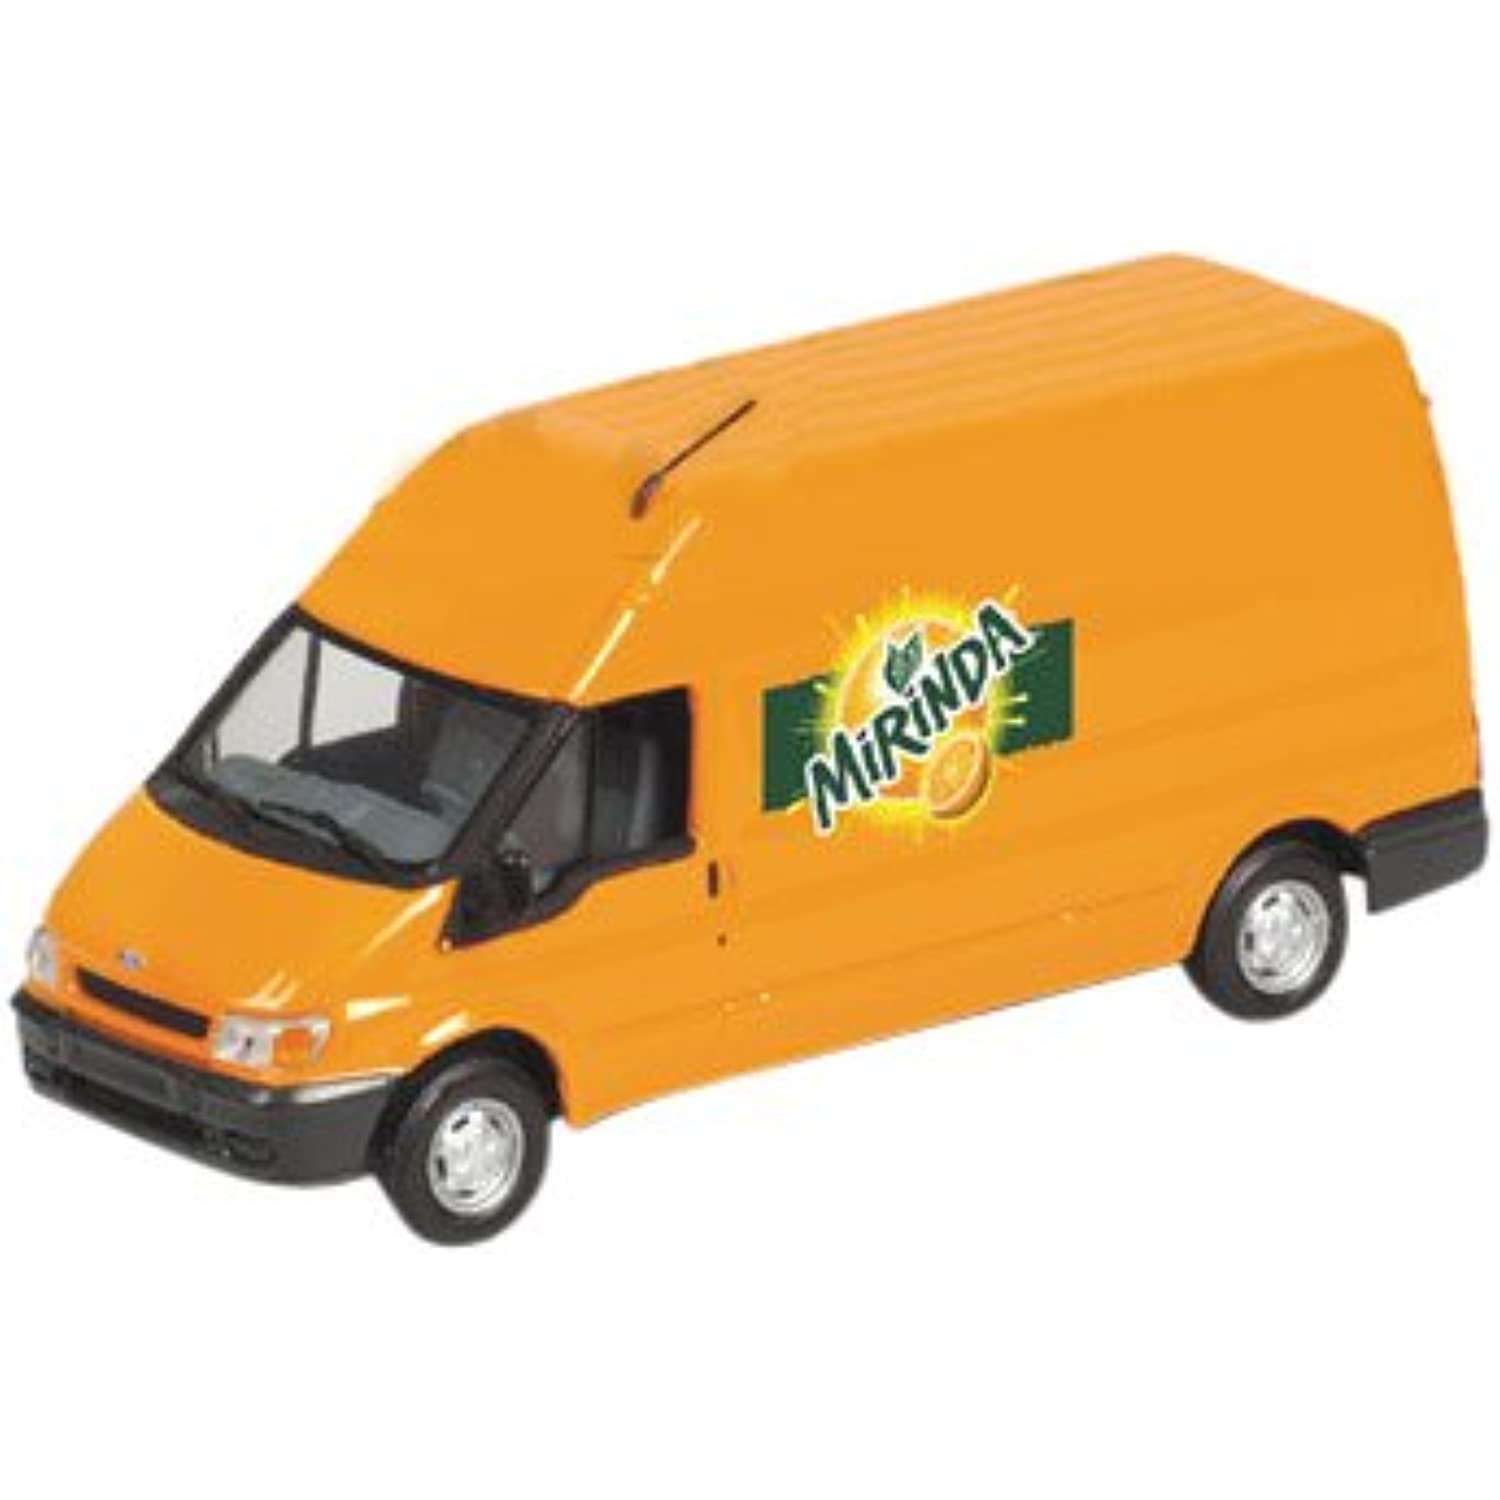 Ford Transit Vehicules 430089301 430089301 Vehicules 430089301 Ford Minichamps Vehicules Minichamps Minichamps Transit SzMGLqVpU